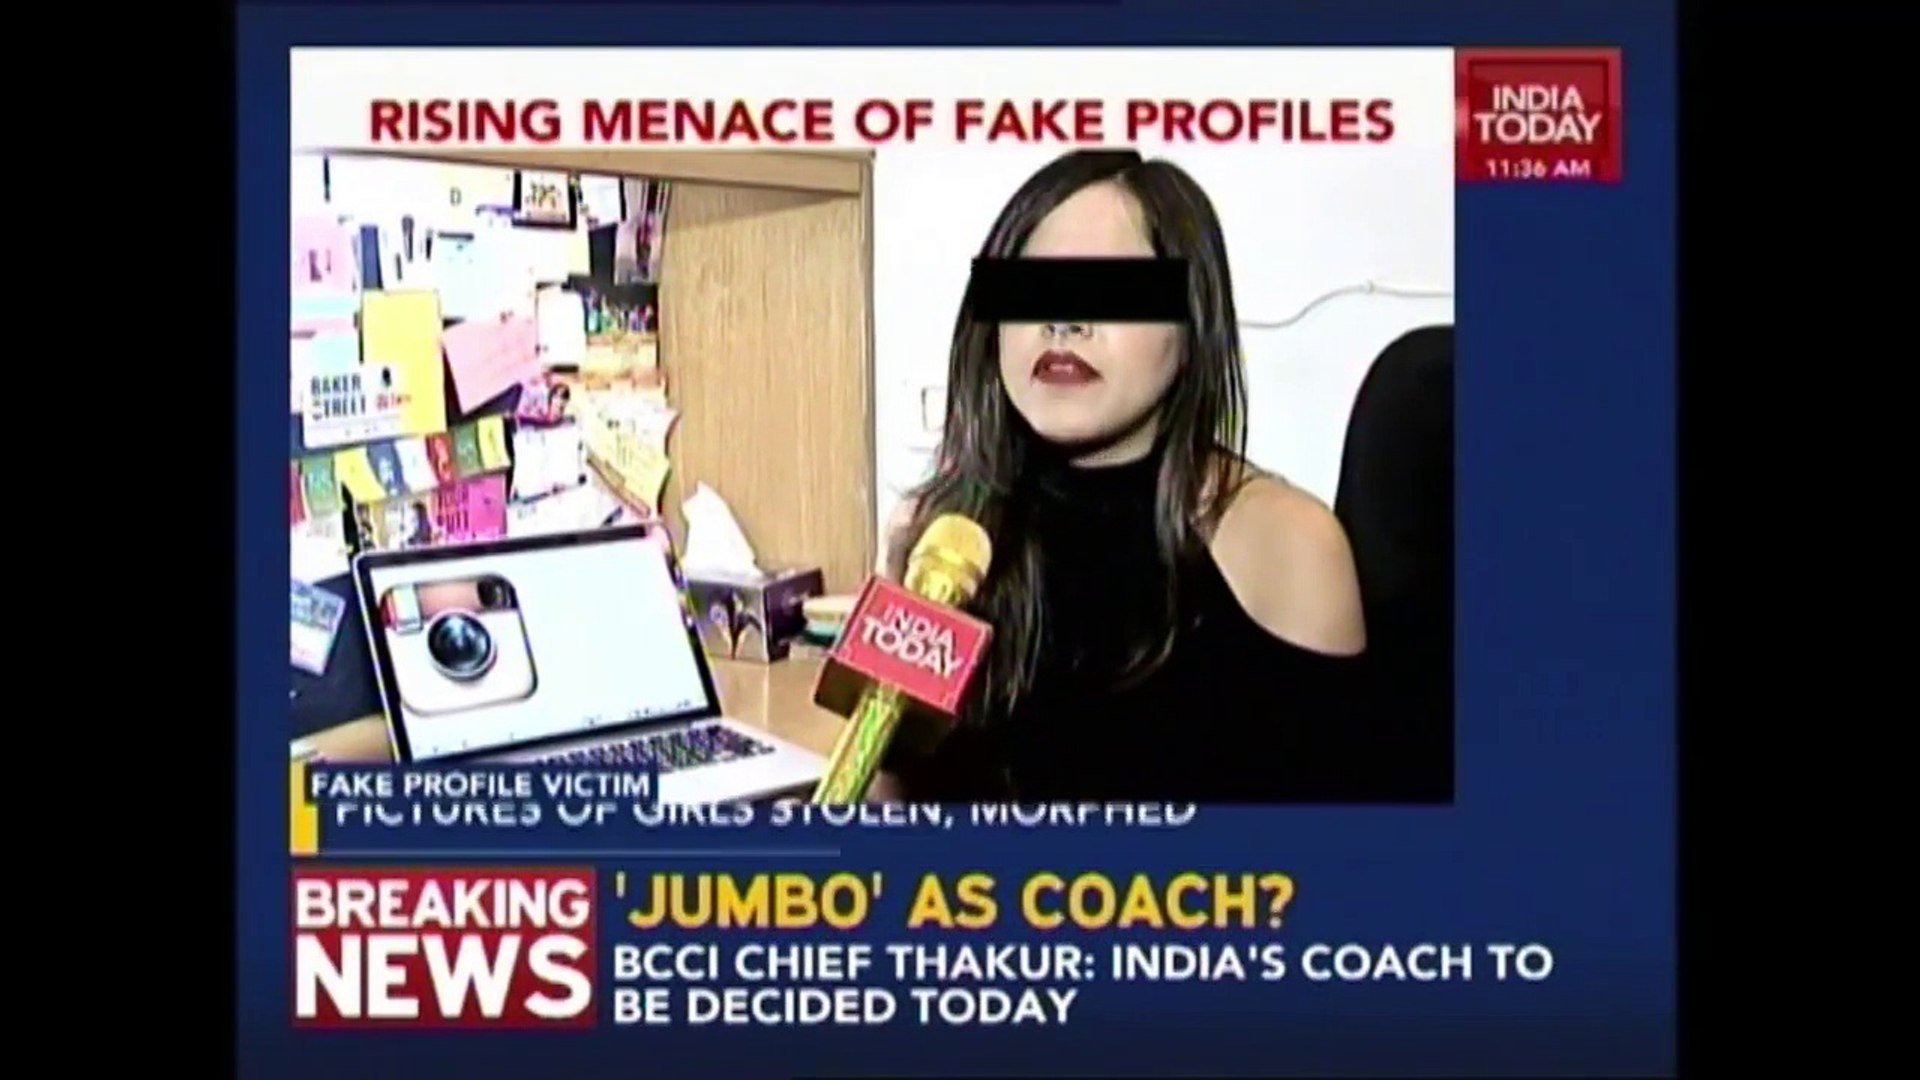 Women Blackmailed In Delhi By Hacking Their Social Media Accounts